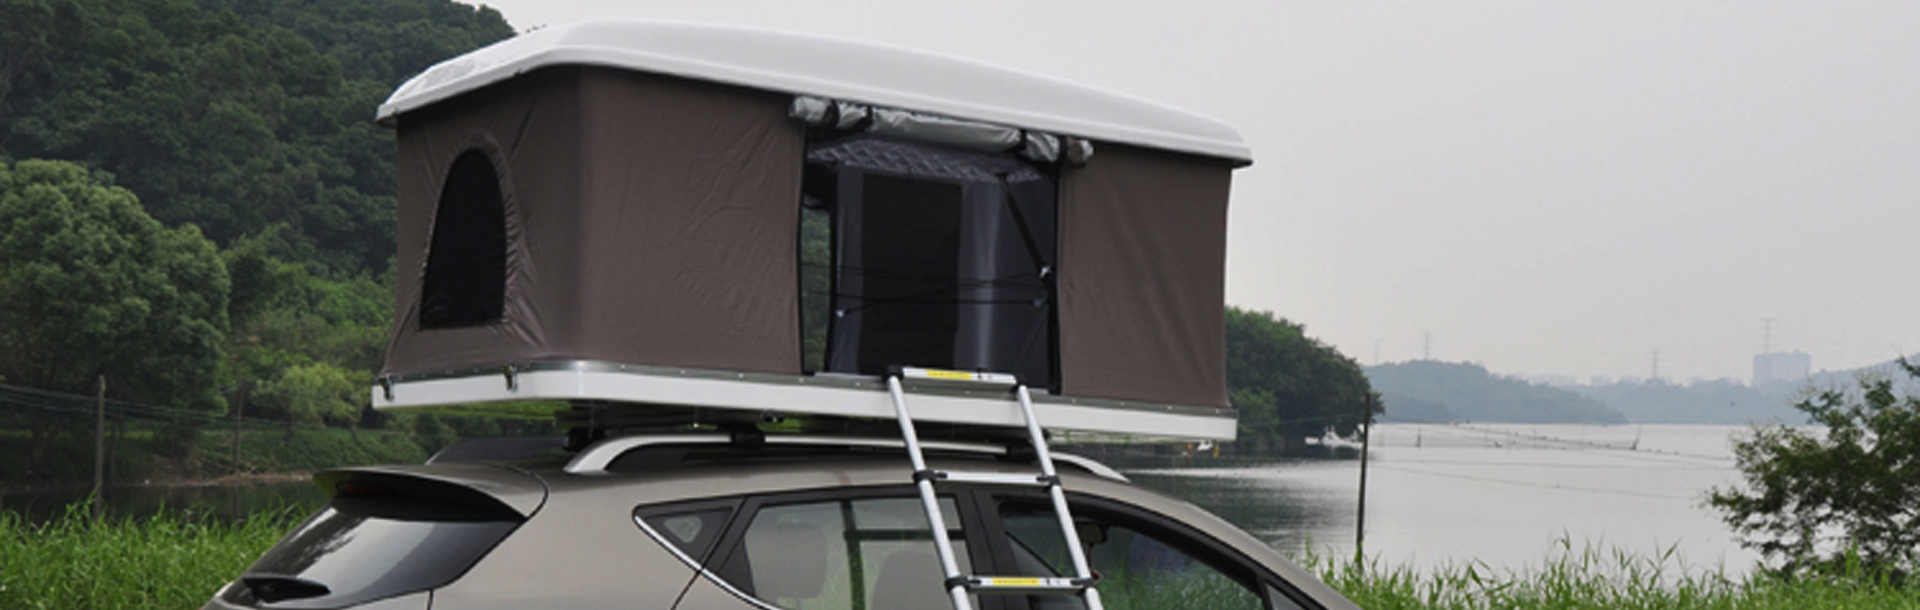 roof top tent dac banner-00